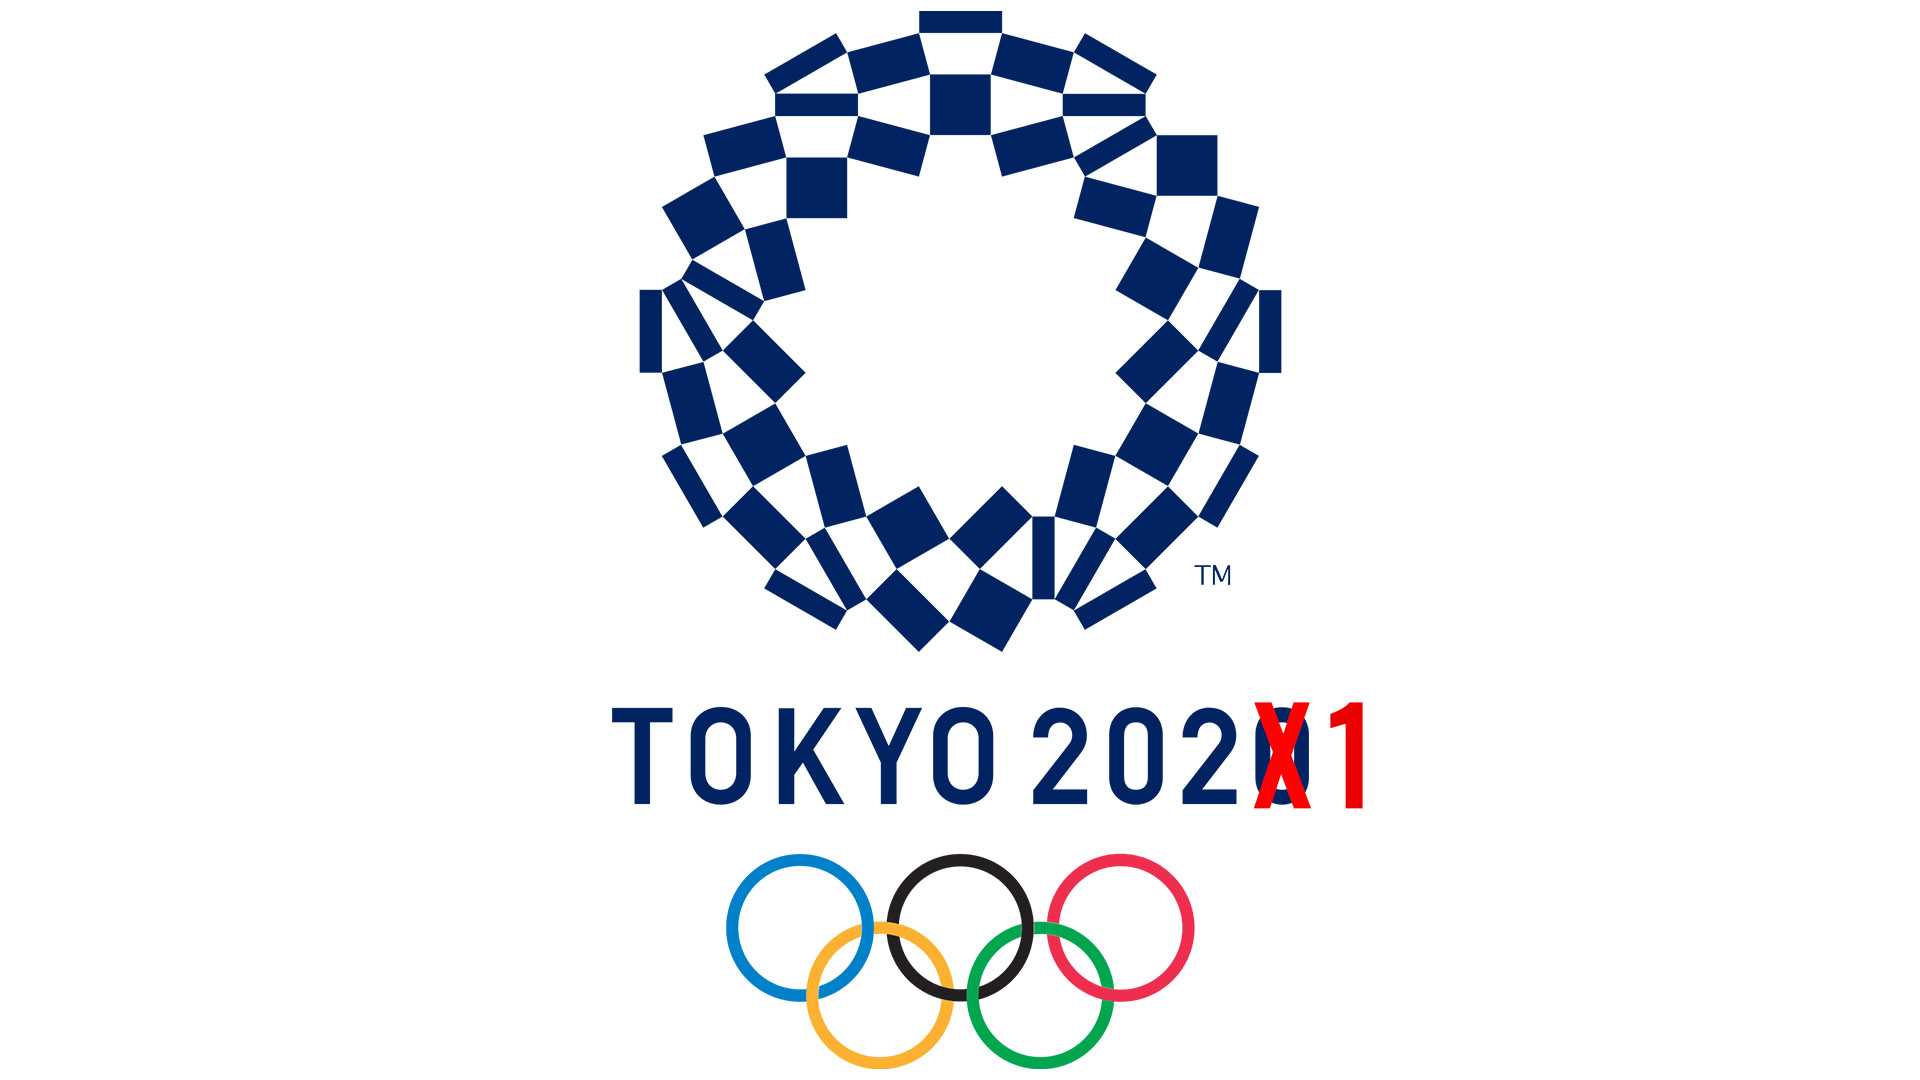 Jeux Olympiques Tokyo 2020